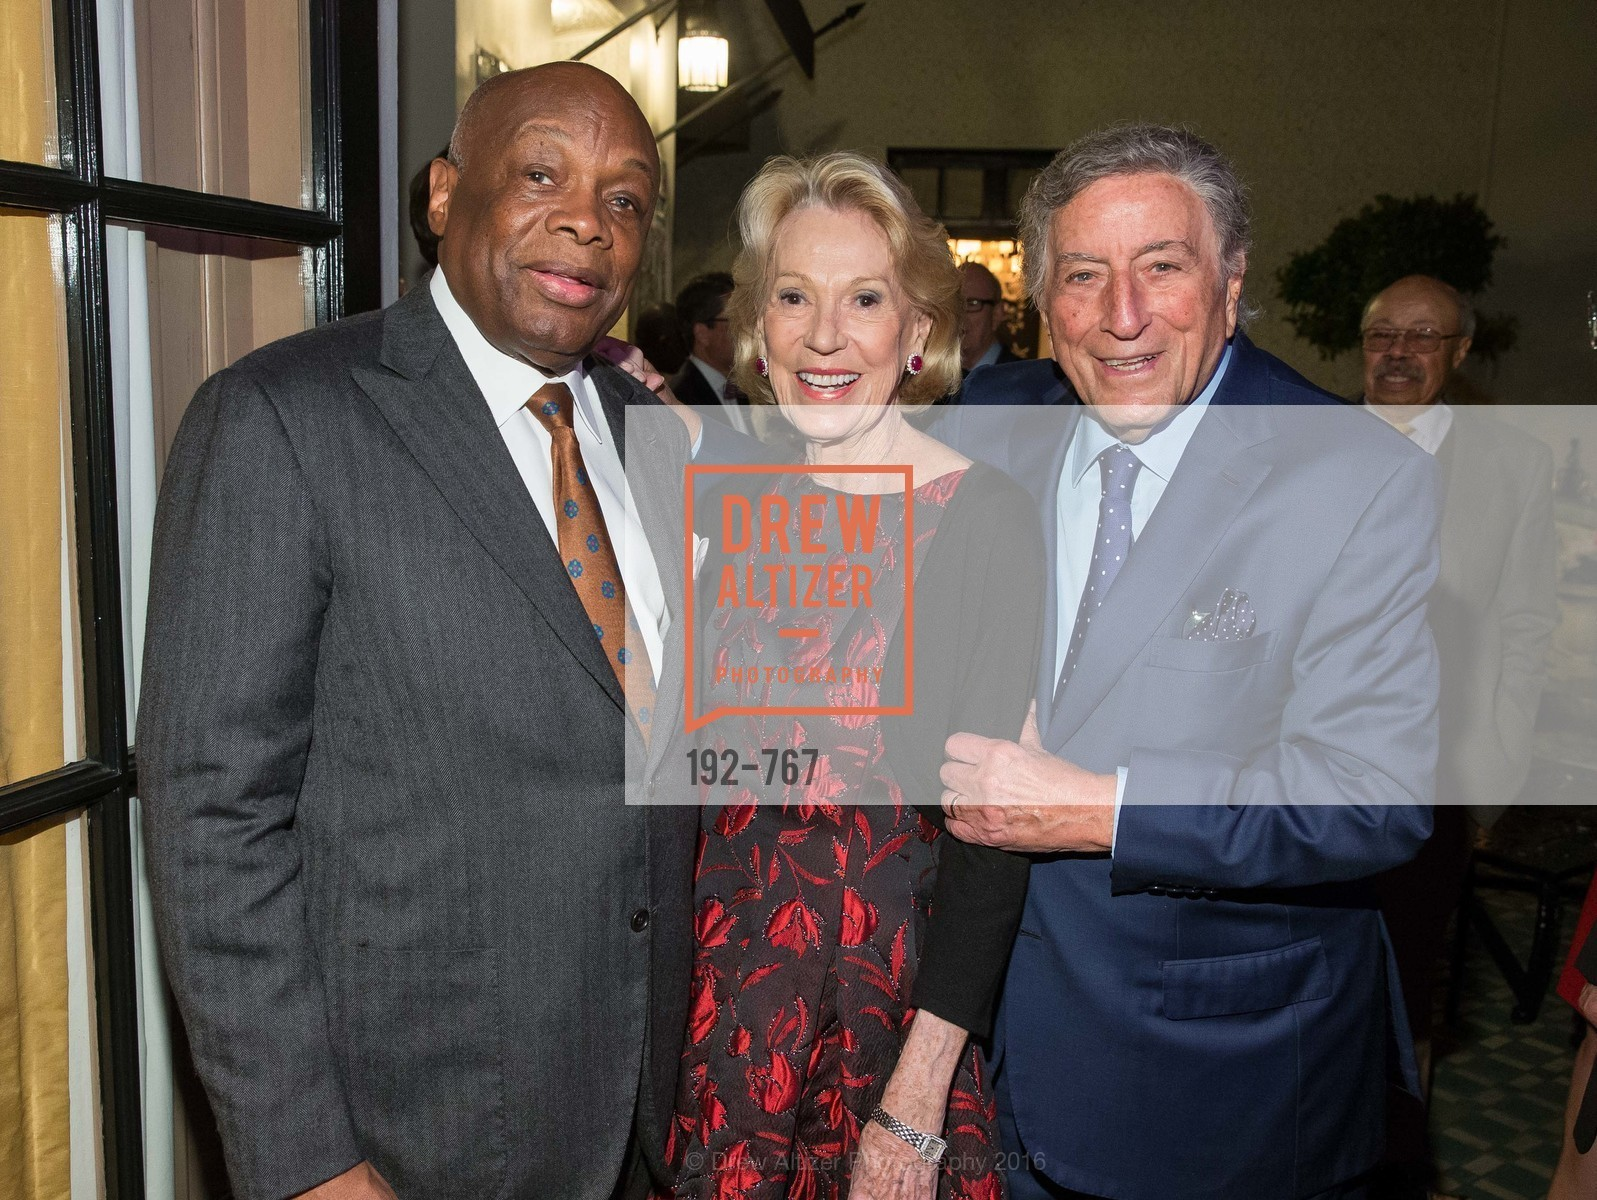 Willie Brown, Charlotte Shultz, Tony Bennett, A Special Reception with Tony Bennett, The Fairmont, San Francisco, The Penthouse Suite, January 26th, 2016,Drew Altizer, Drew Altizer Photography, full-service agency, private events, San Francisco photographer, photographer california